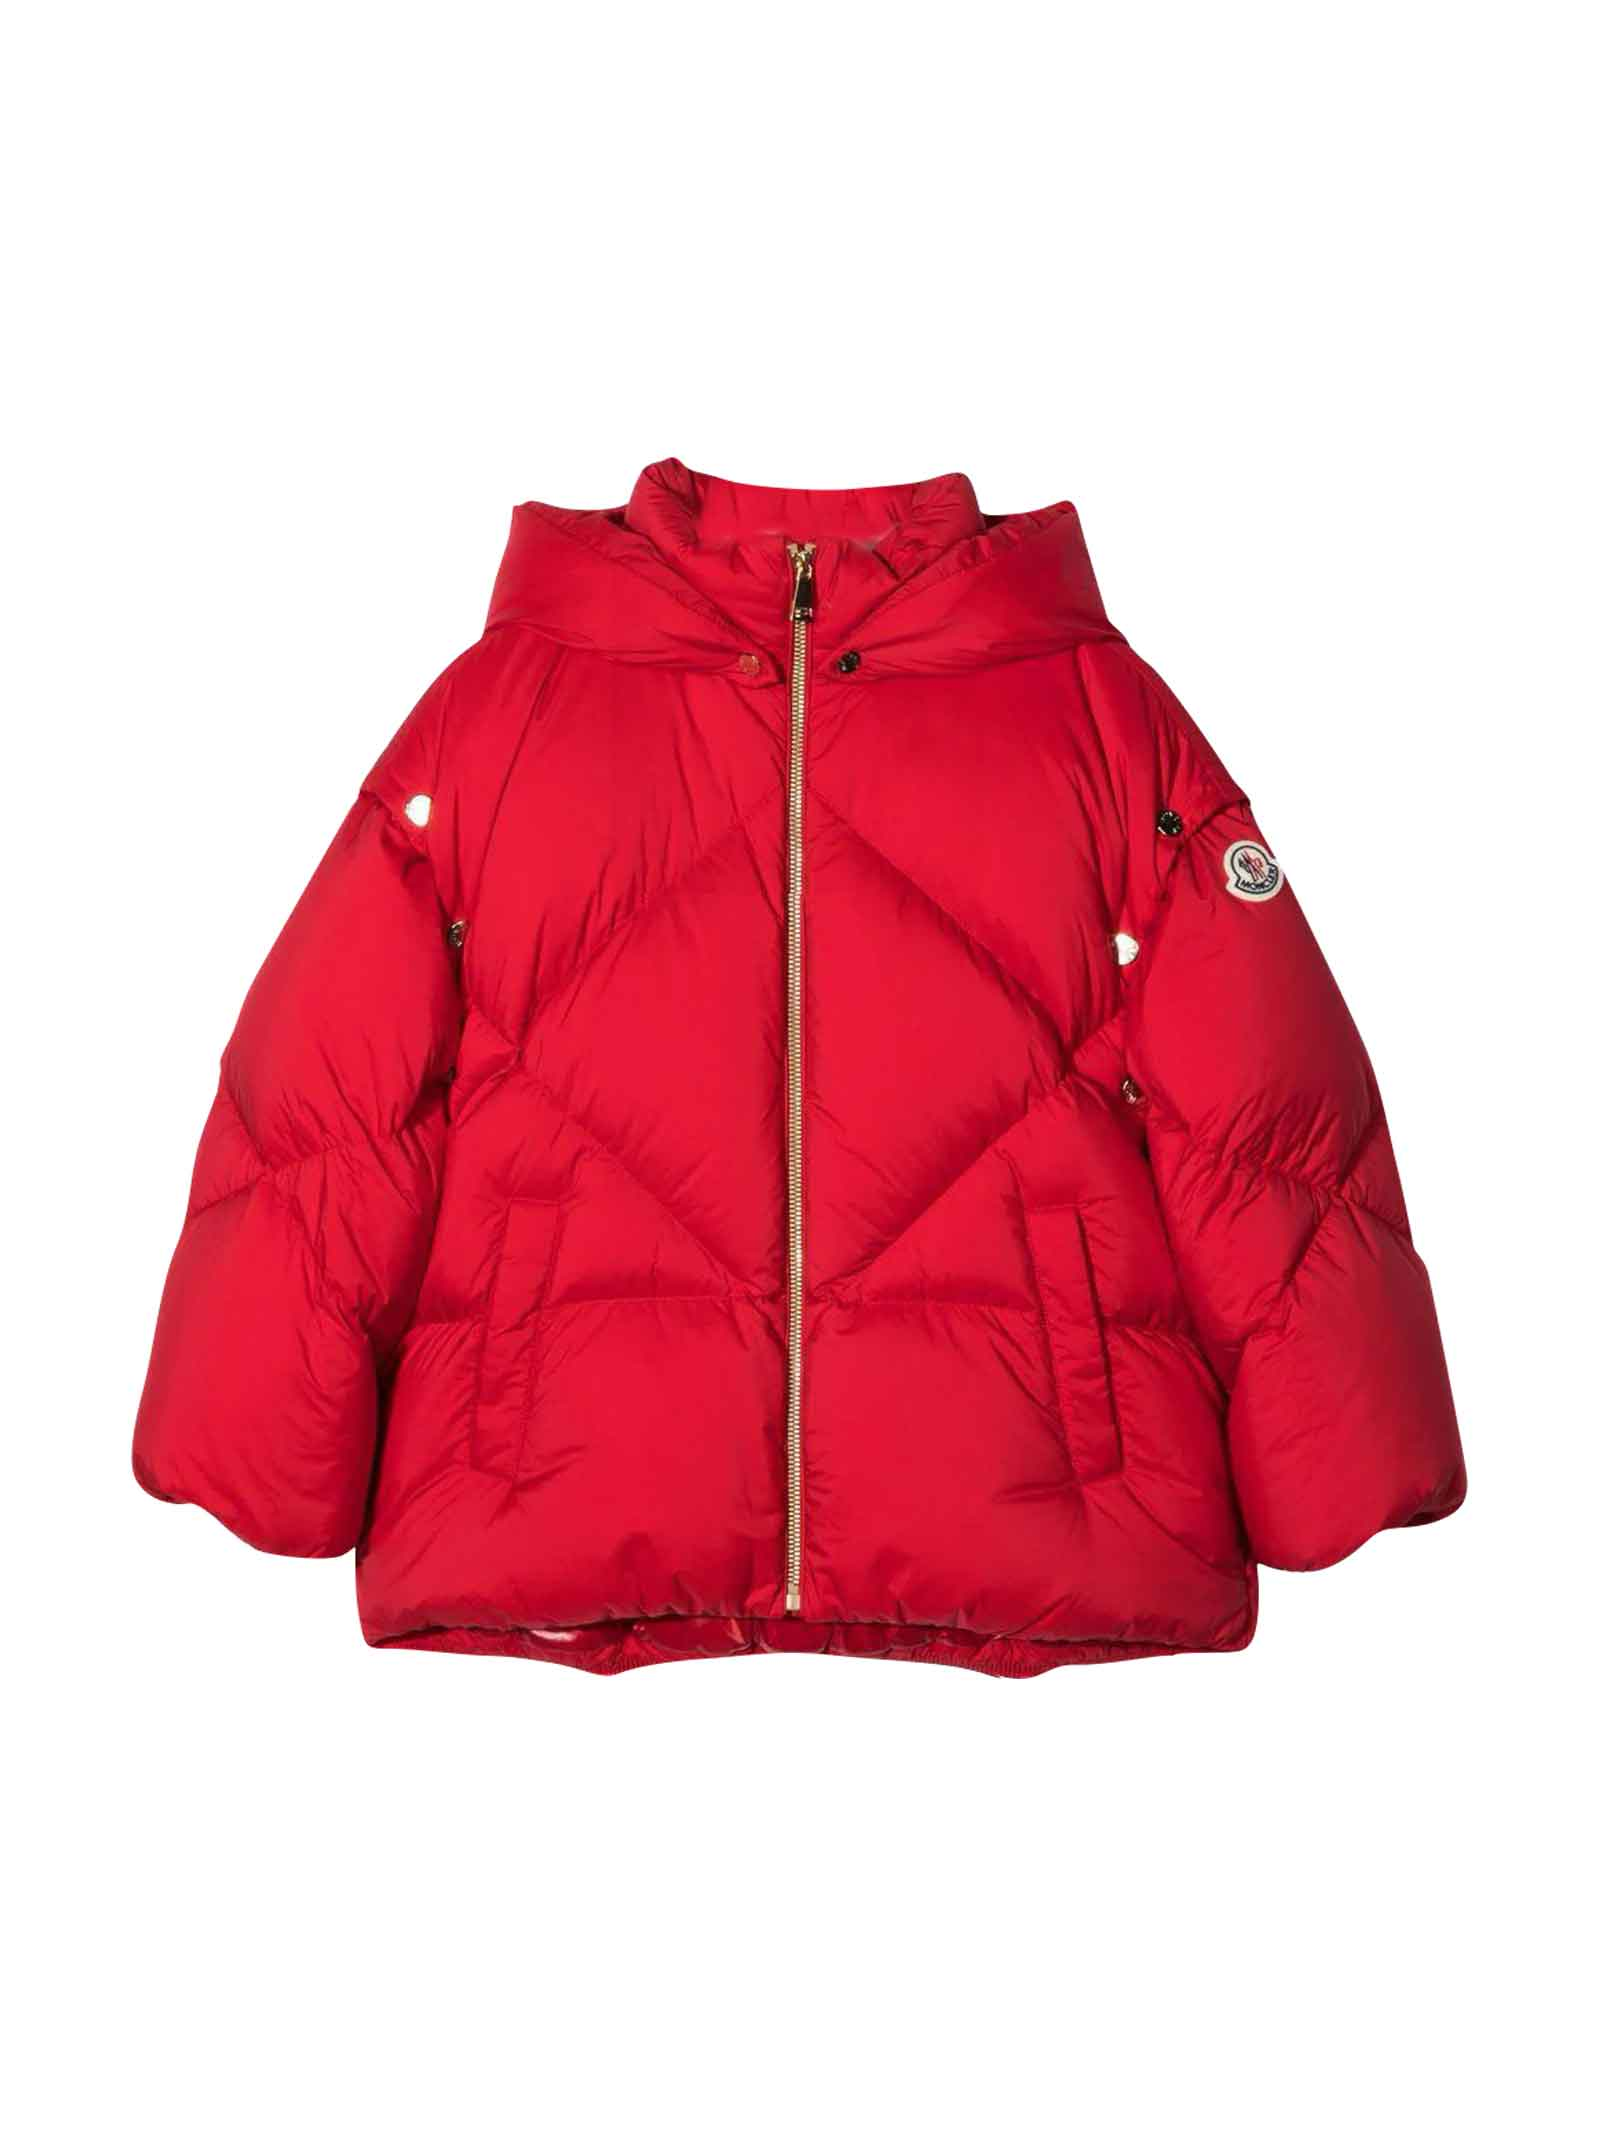 Moncler Unisex Red Down Jacket